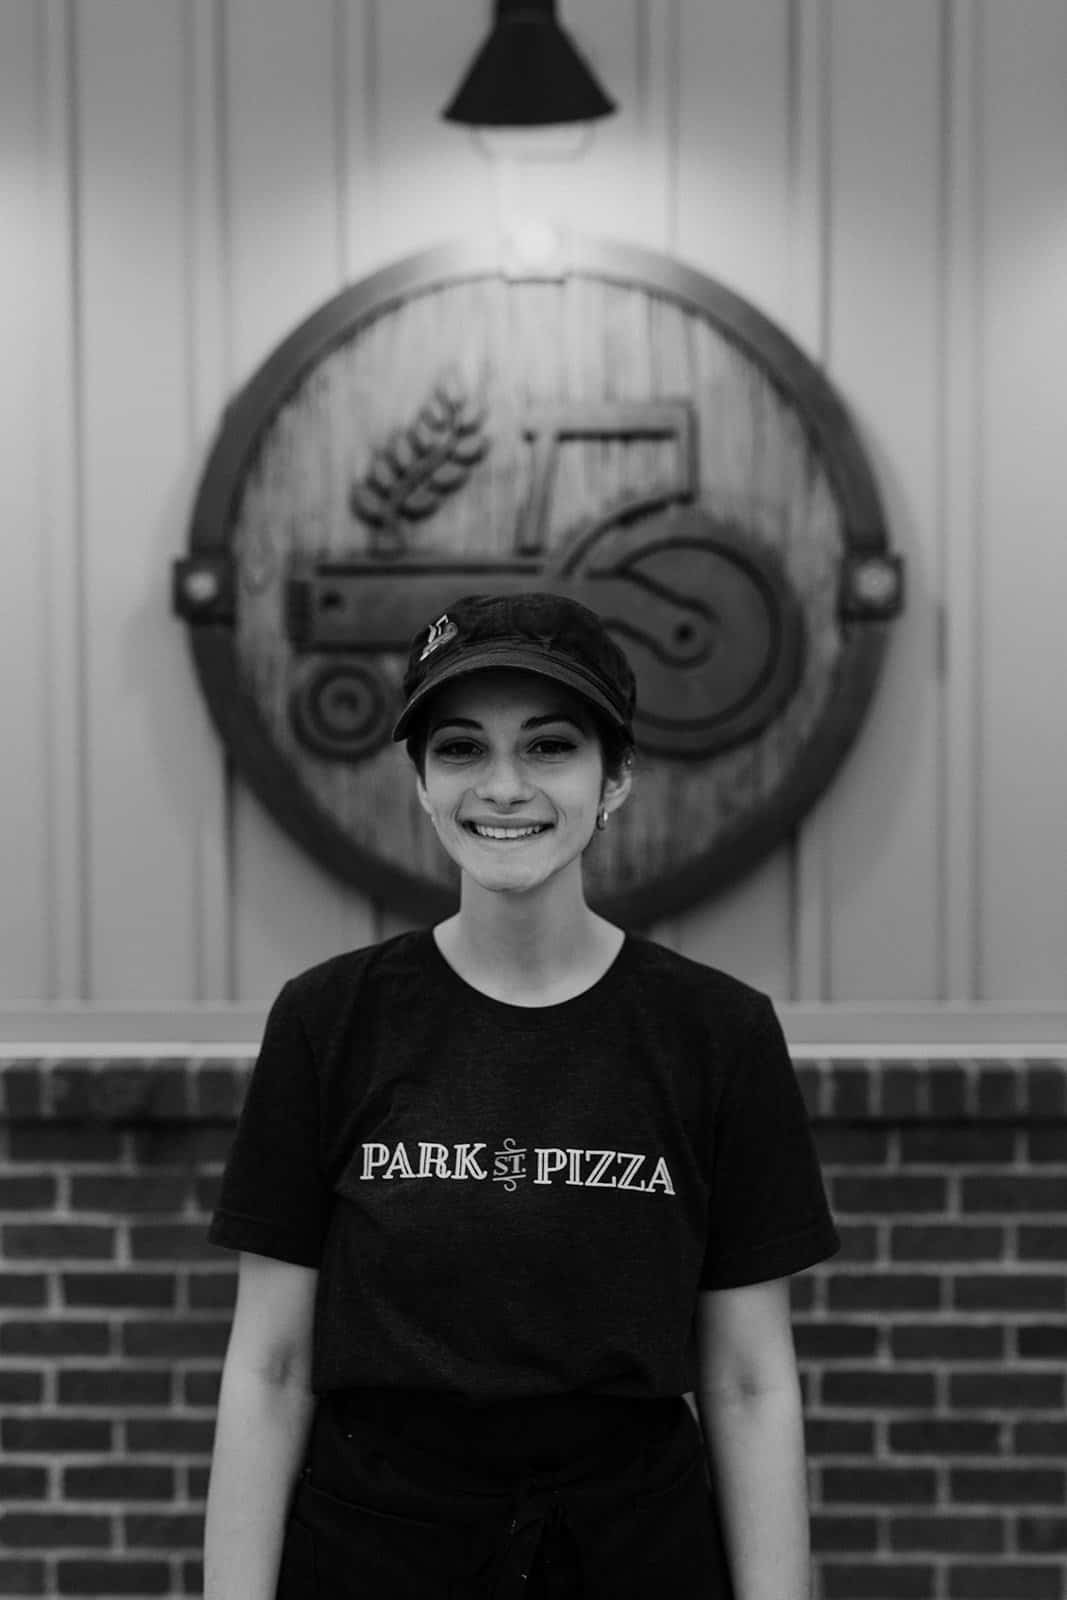 Park Street Pizza / Commercial Shoot 351